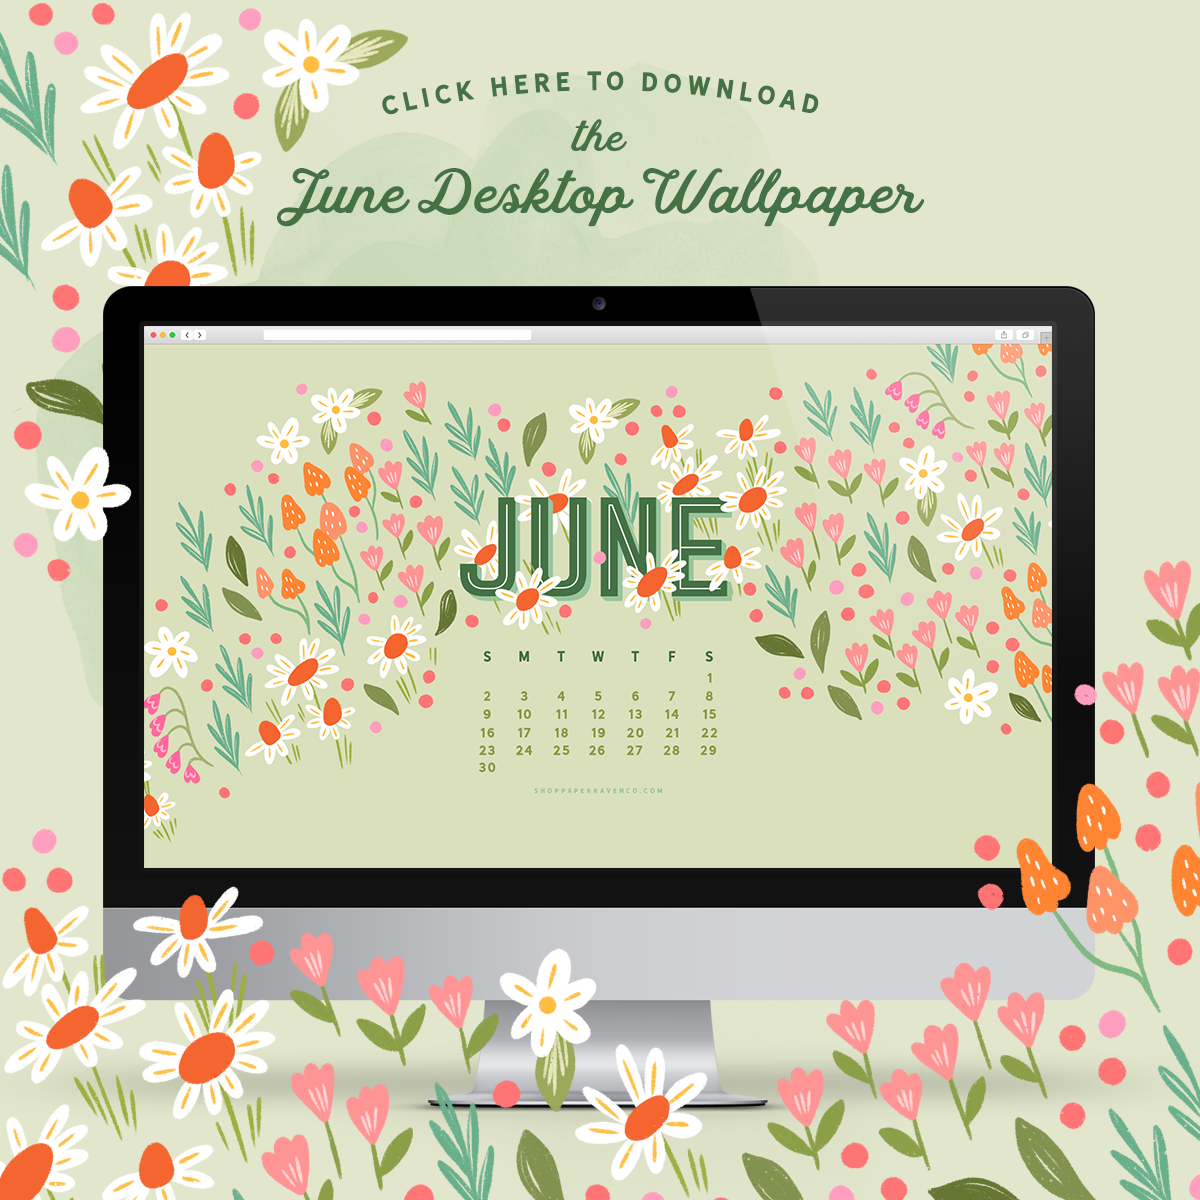 June 2019 Illustrated Desktop Wallpaper by Paper Raven Co.  - www.ShopPaperRavenCo.com #dressyourtech #desktopwallpaper #desktopcalendar